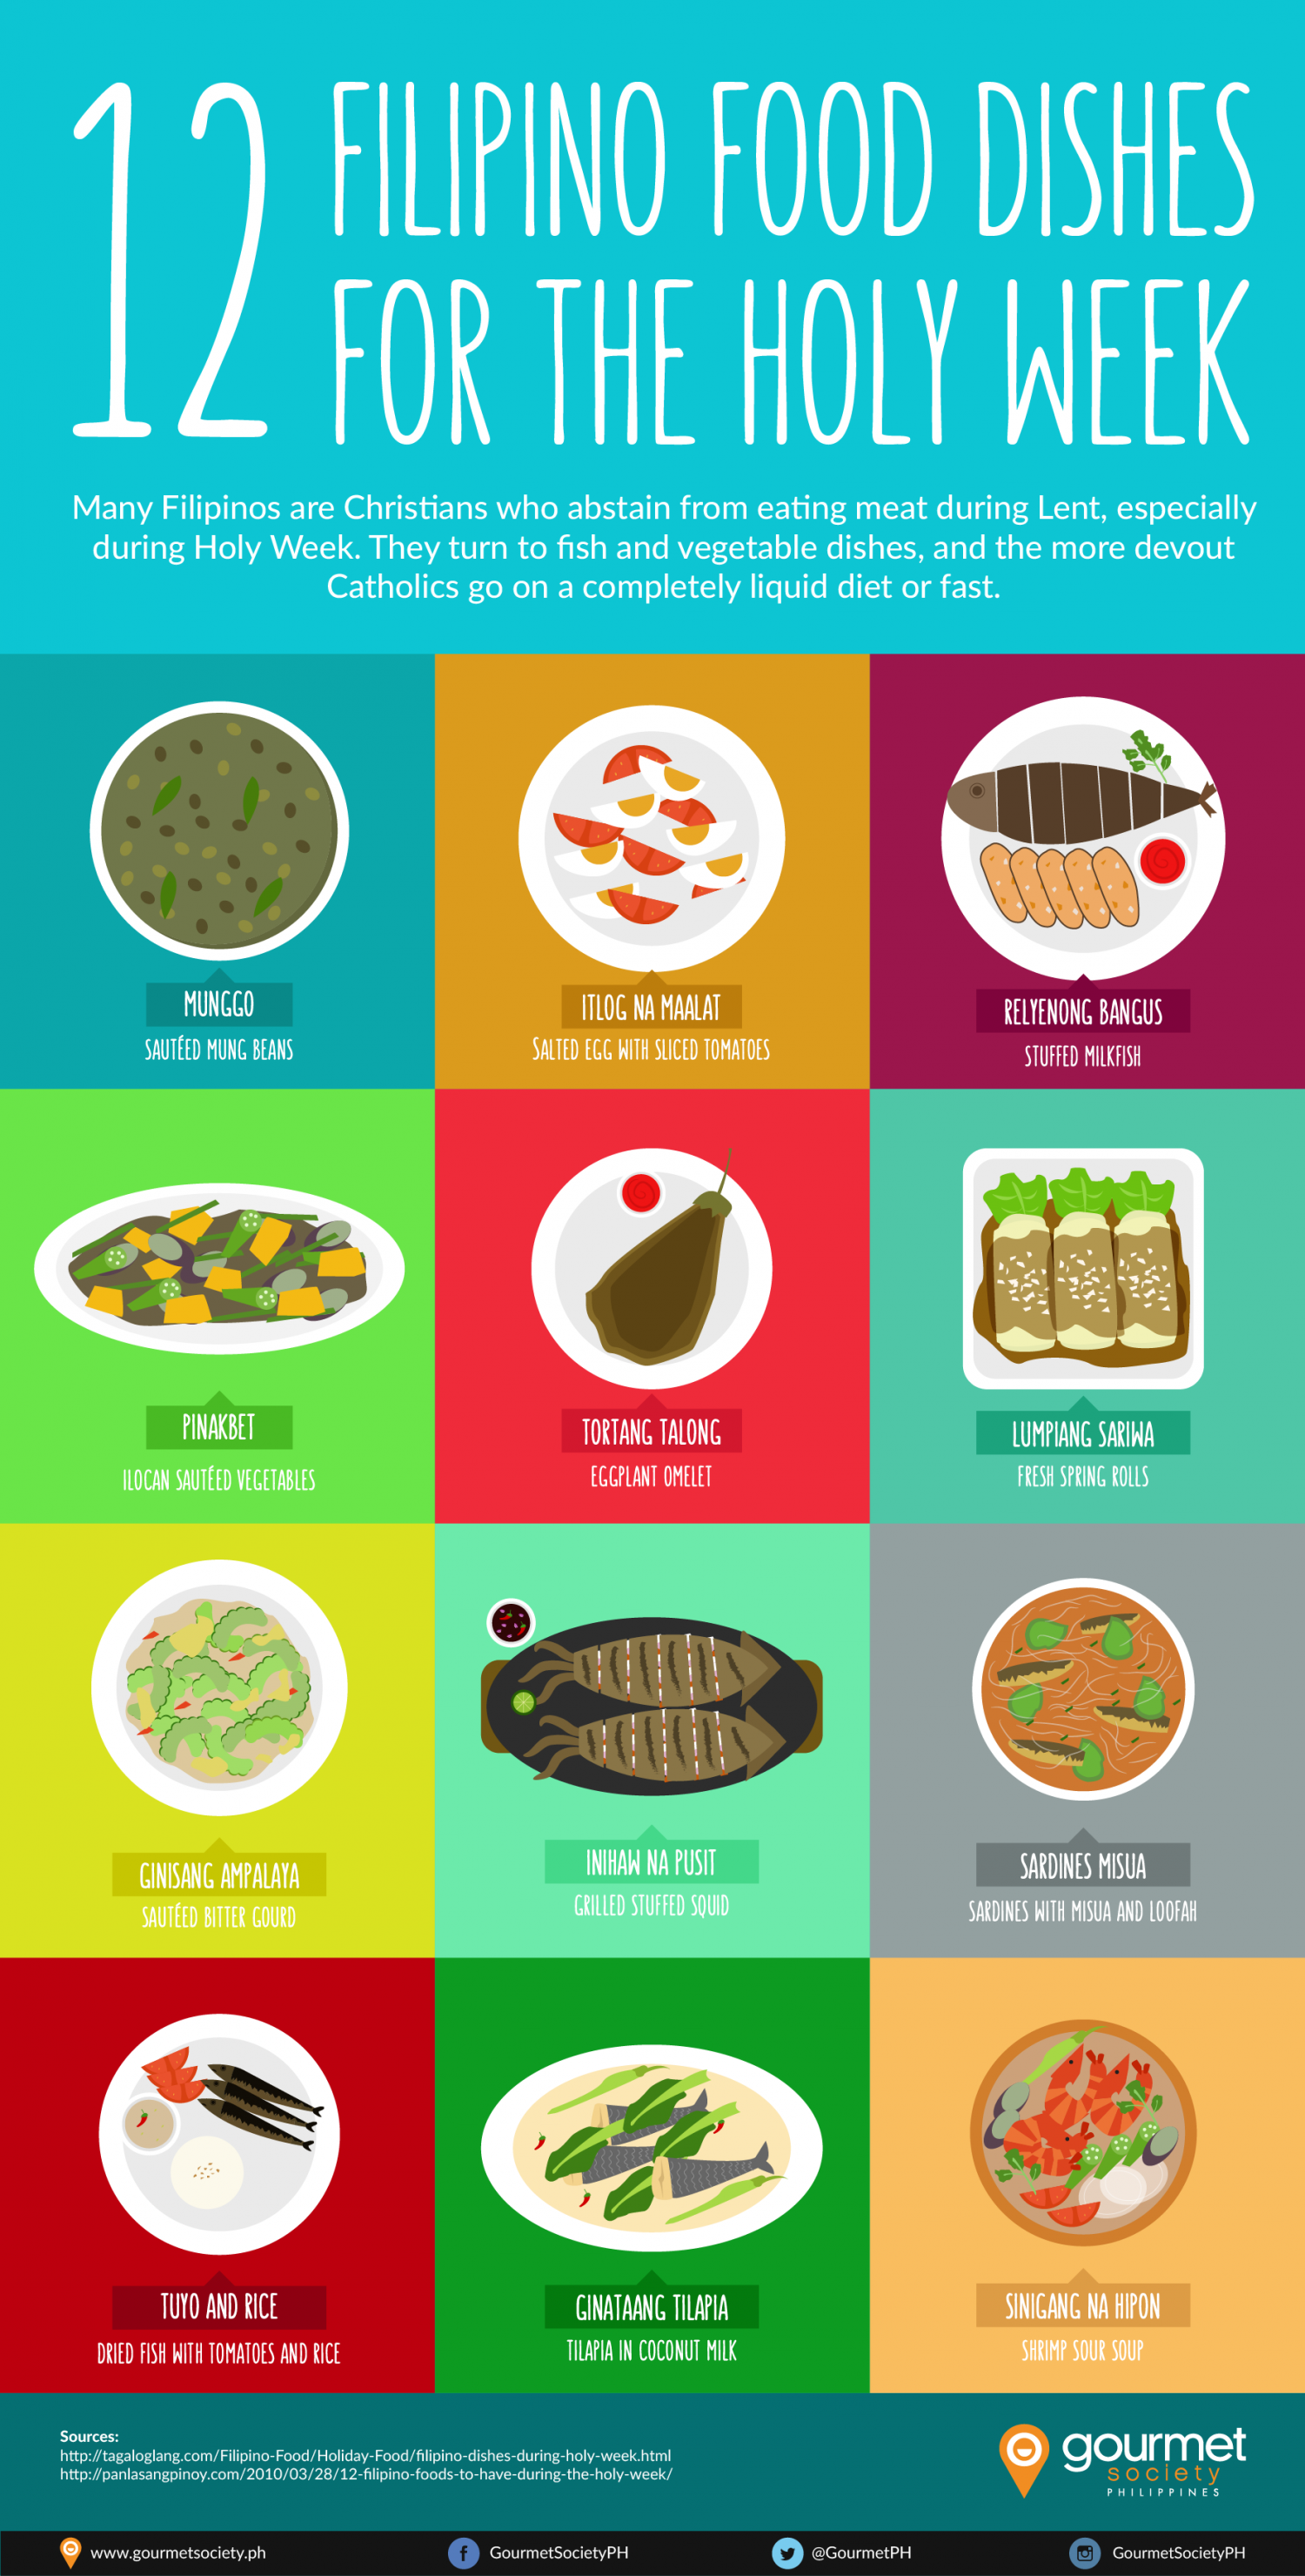 12 Filipino Dishes for Holy Week Infographic